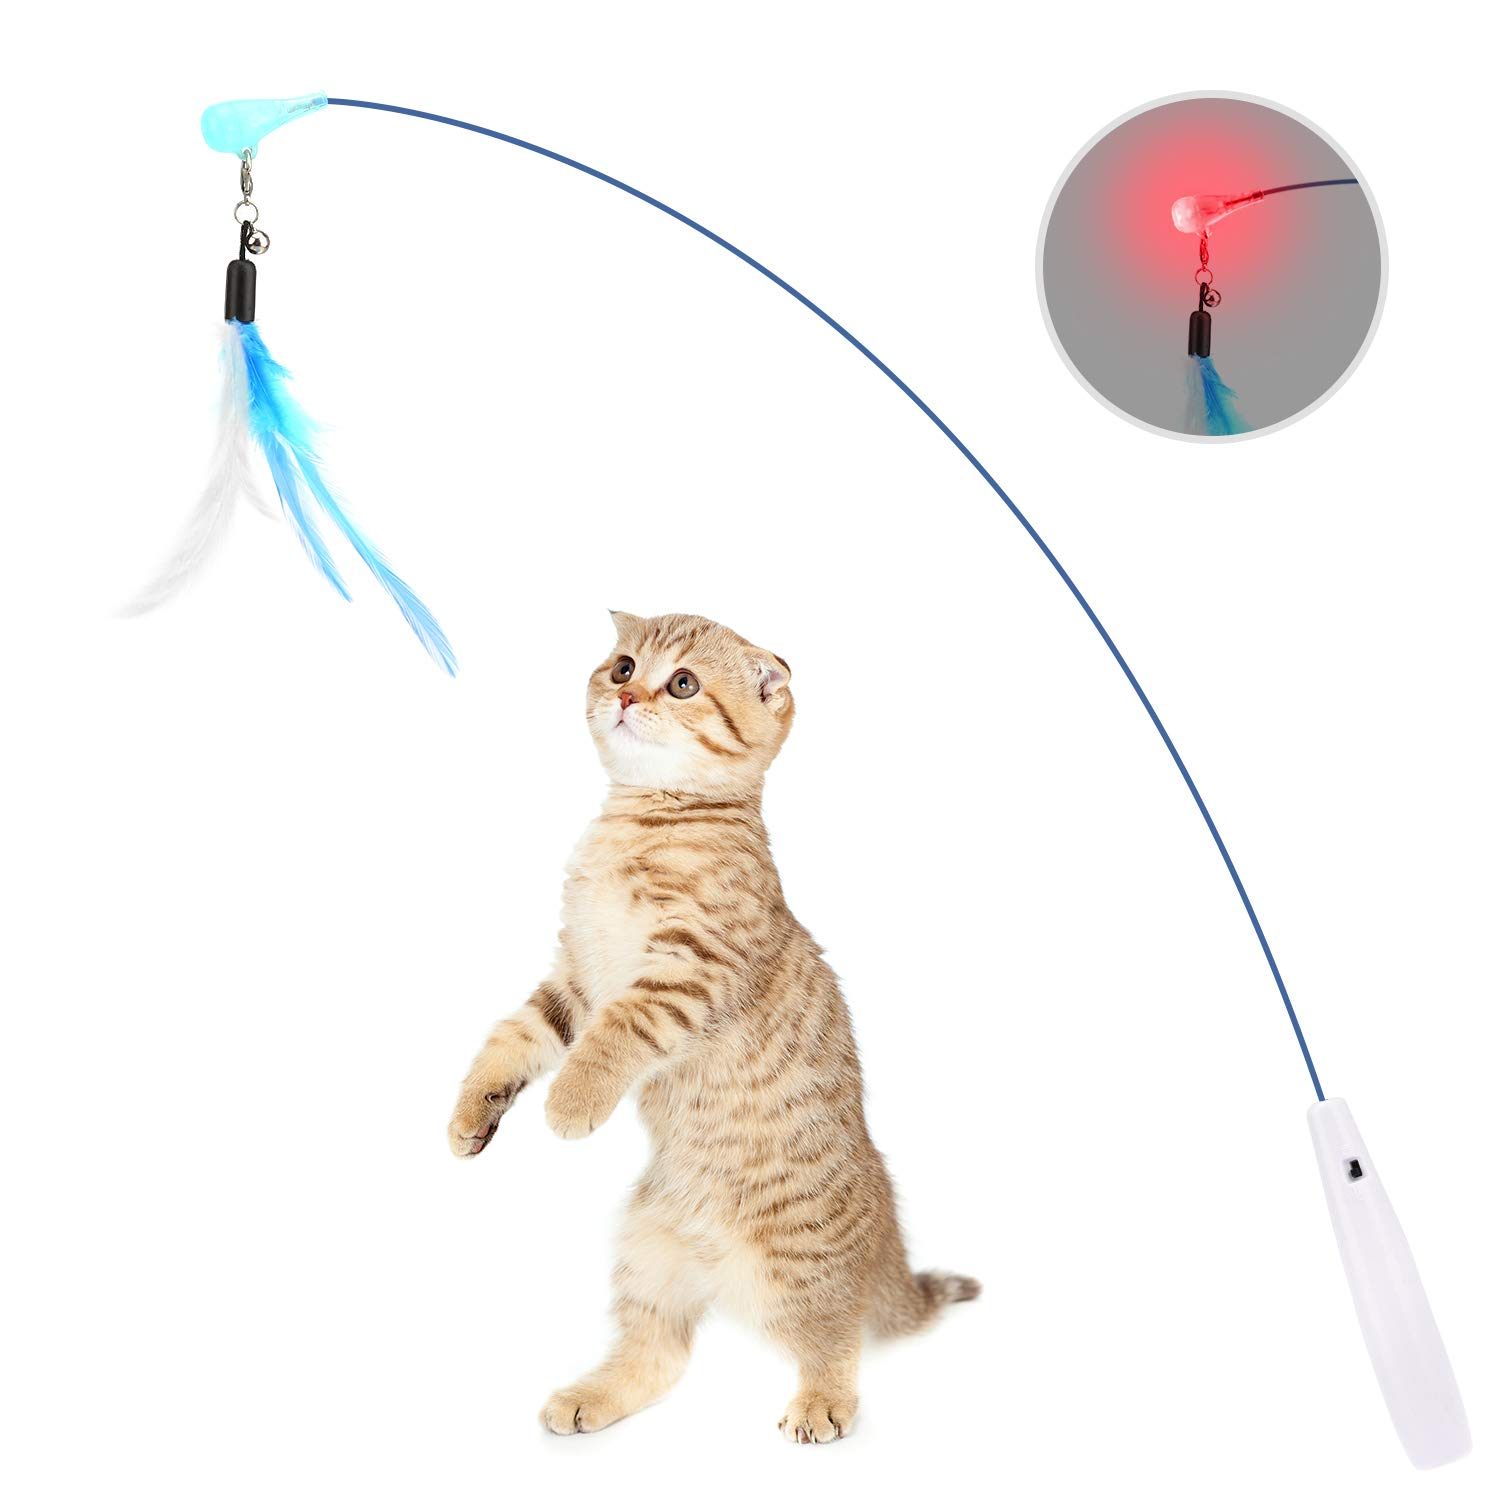 """Pawaboo Feather Teaser Cat Toy, Interactive Feather Wand Flying Feather Cat Catcher with Extra Long 31.5"""" Wand and Small Bell, Fun Exerciser Playing Toy for kitten or cat, Leopard Brown Feather"""